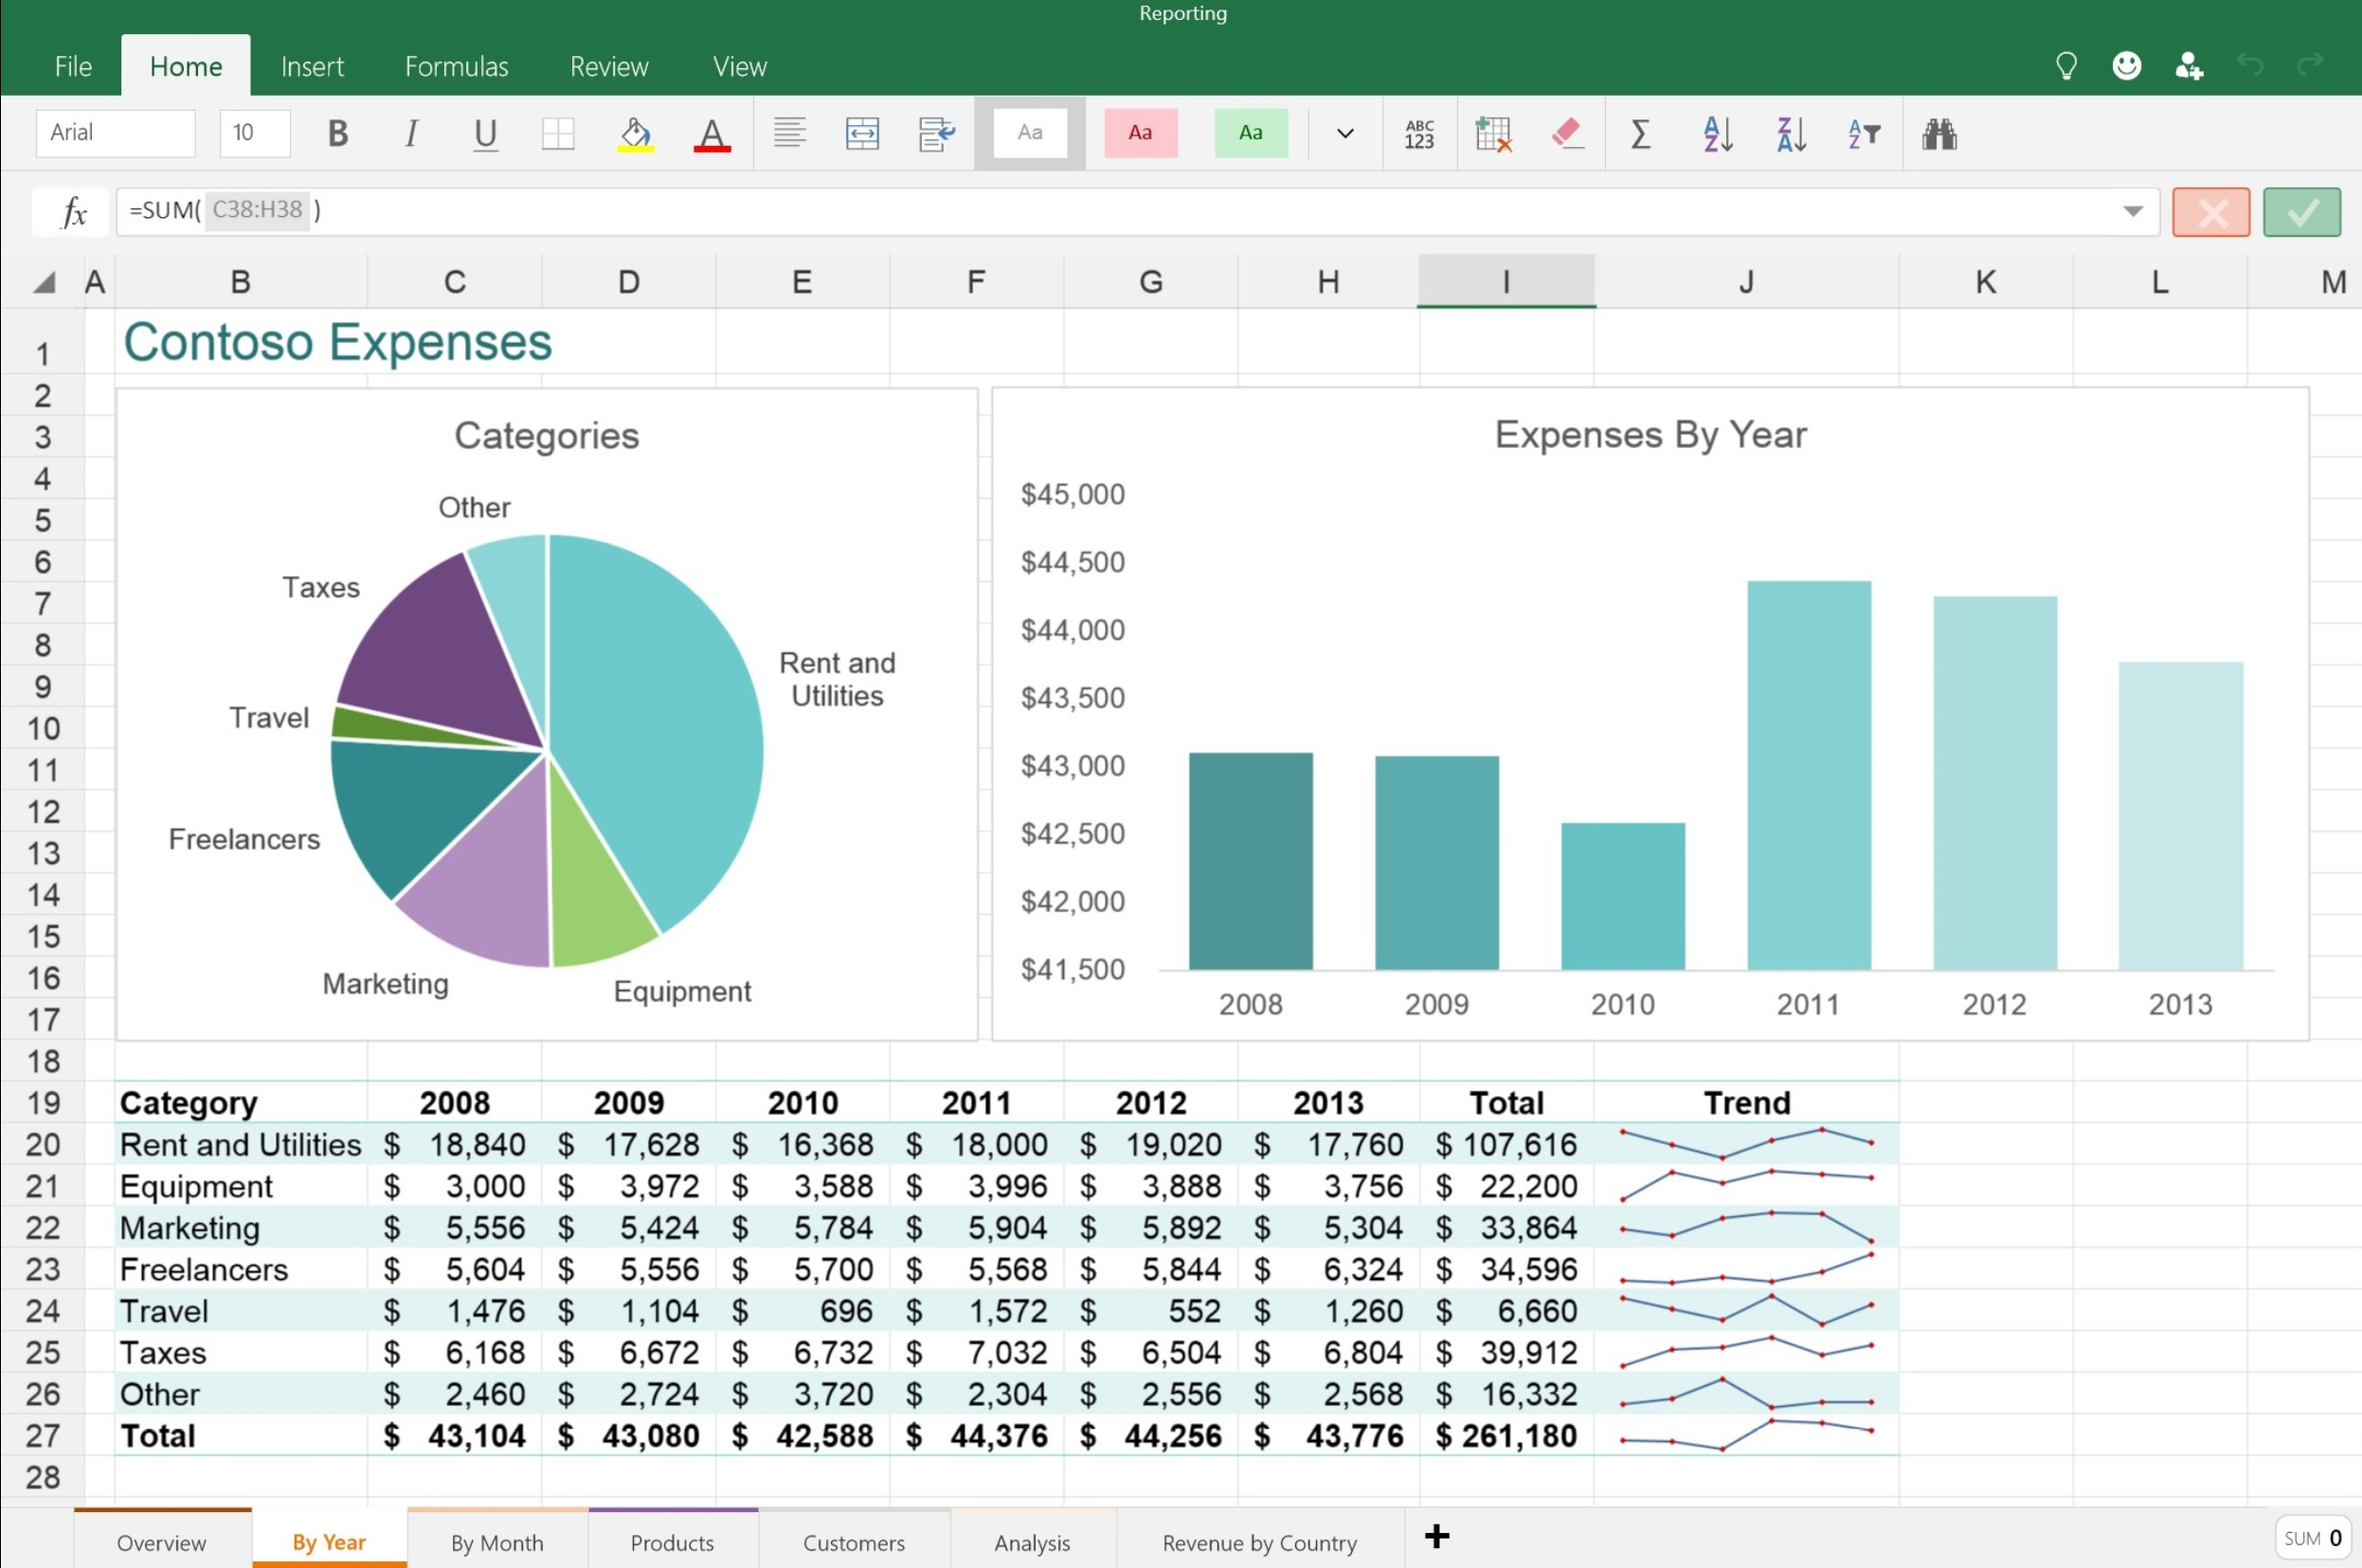 Ediblewildsus  Inspiring Features Available In The New Word Excel And Powerpoint Apps For  With Handsome Excel Touch App  With Delightful Excel If Or Formulas Also Excel Vba Ucase In Addition Excel Chart With Two Y Axes And If Excel Multiple Conditions As Well As If In Excel  Additionally Sample Excel Spreadsheet Templates From Mspowerusercom With Ediblewildsus  Handsome Features Available In The New Word Excel And Powerpoint Apps For  With Delightful Excel Touch App  And Inspiring Excel If Or Formulas Also Excel Vba Ucase In Addition Excel Chart With Two Y Axes From Mspowerusercom